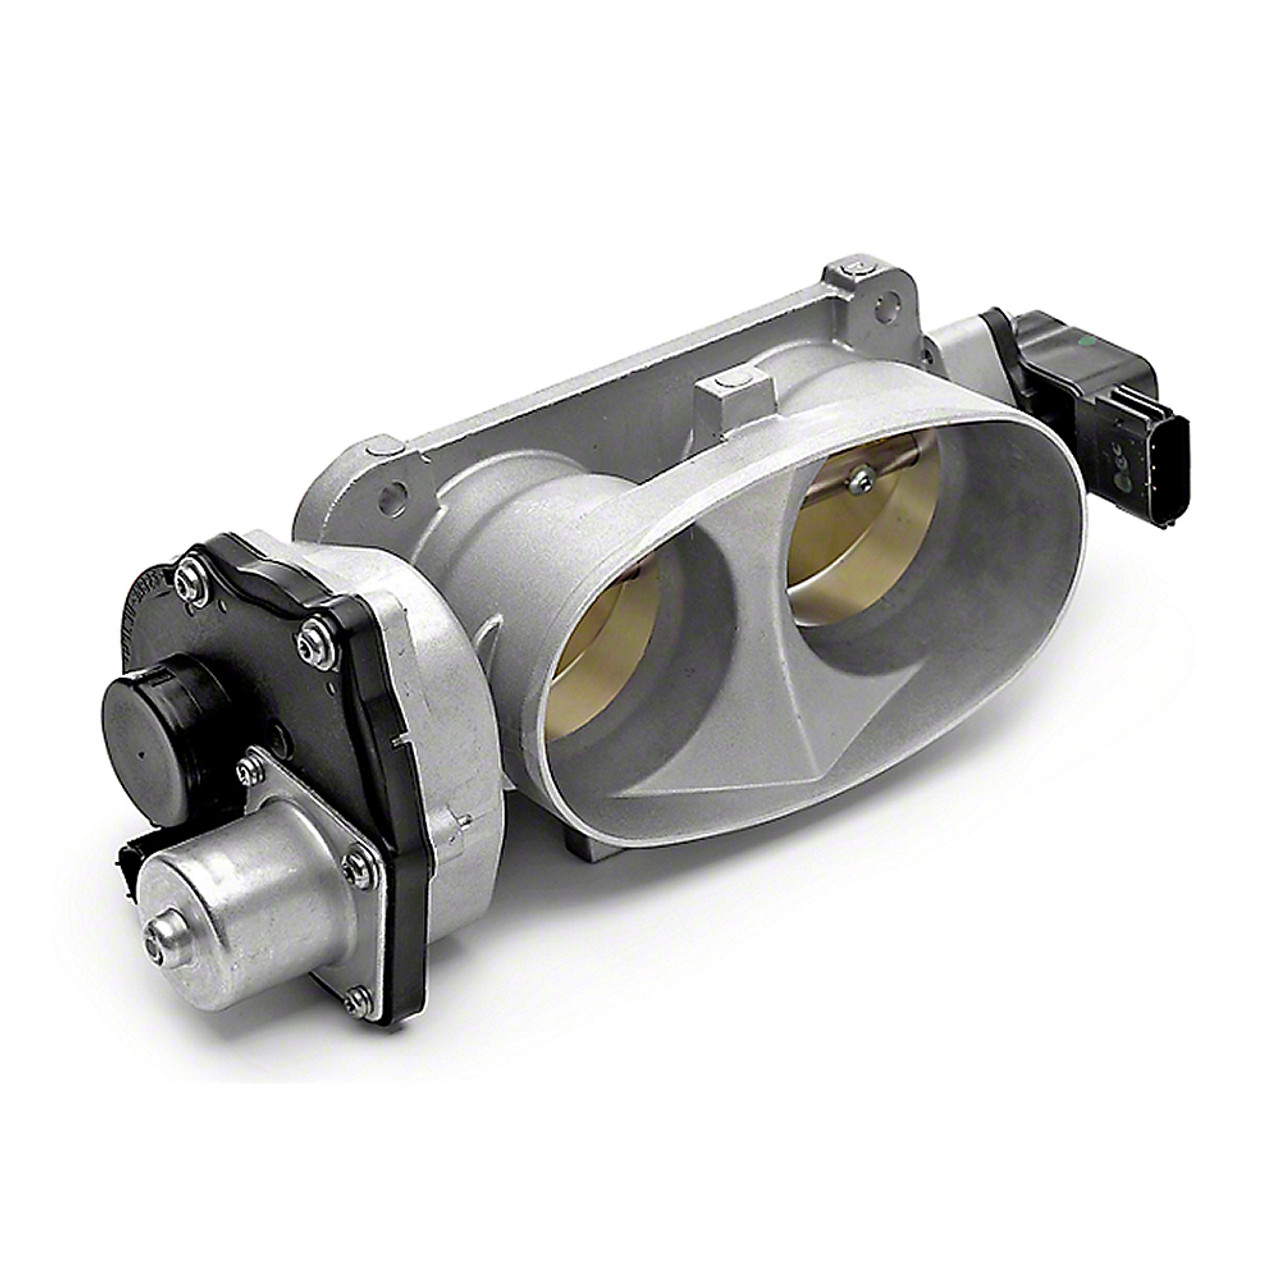 FORD PERFORMANCE RACING 87MM THROTTLE BODY for 2015-2017 MUSTANG 5.2L GT350